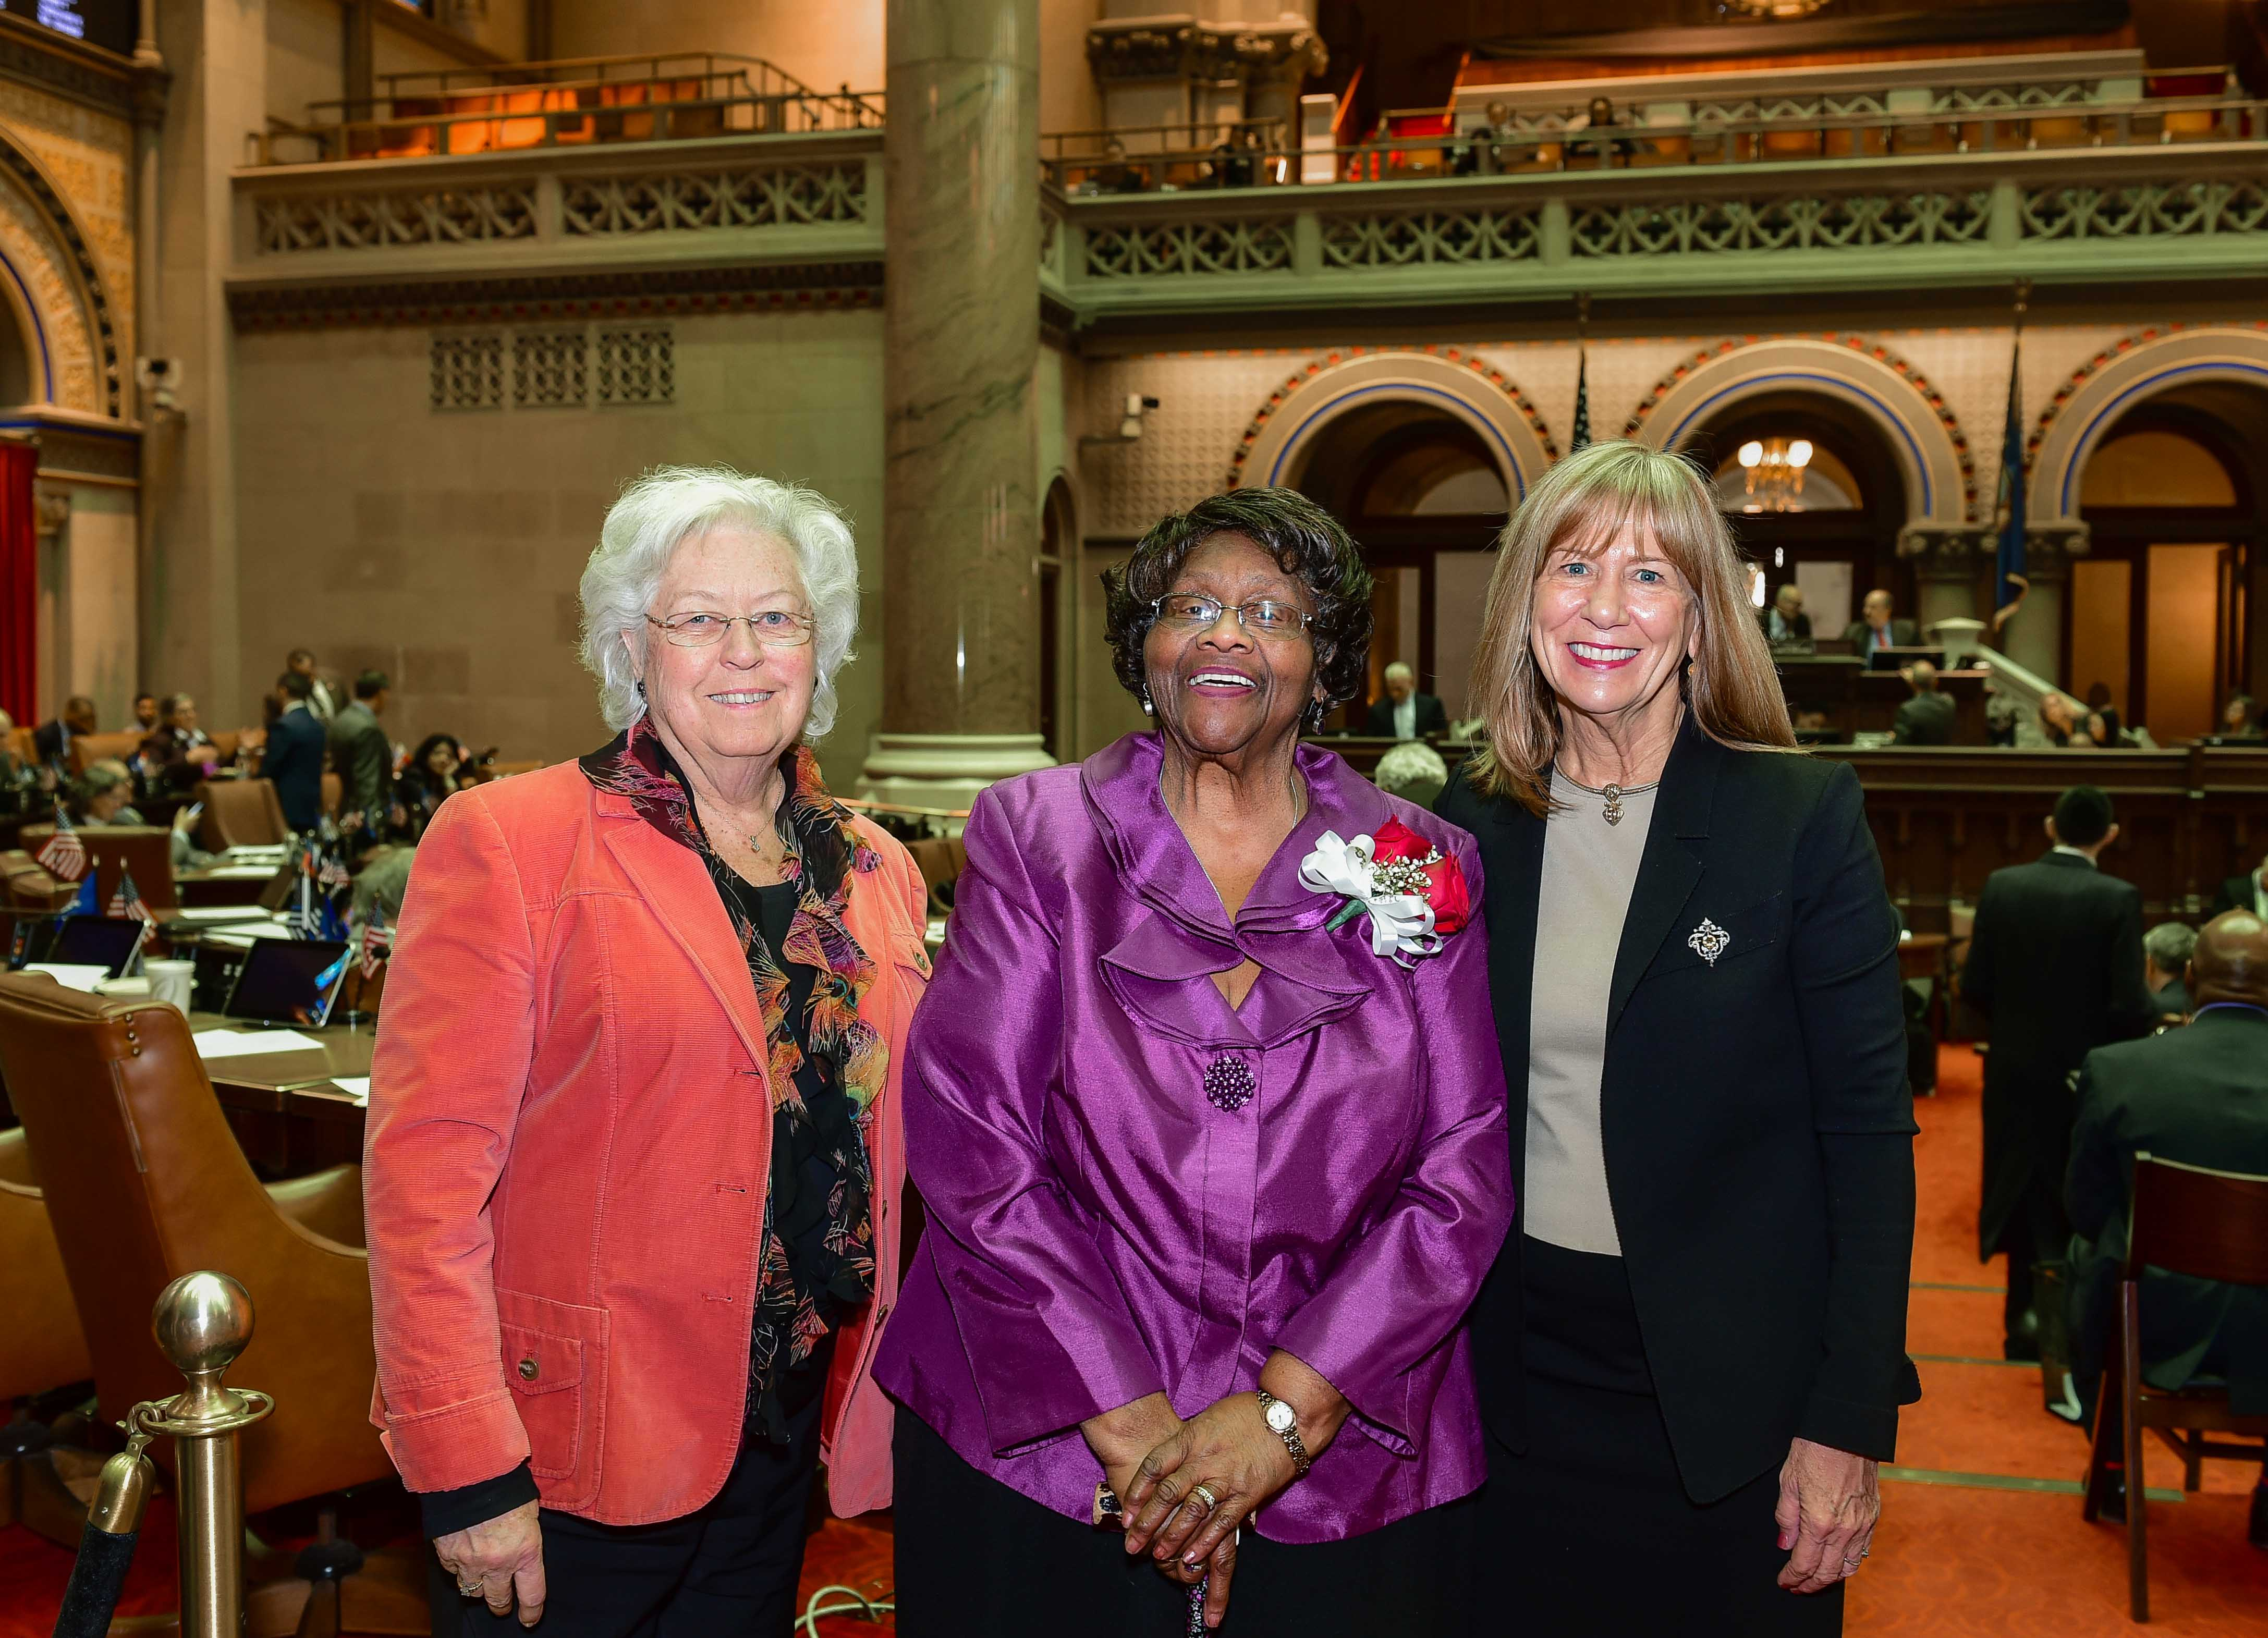 Sandy honored Reverend Jeannette Phillips from Peekskill on the Assembly floor in recognition of Black History Month. She launched Hudson River Health Care Center in Peekskill forty-four years ago to